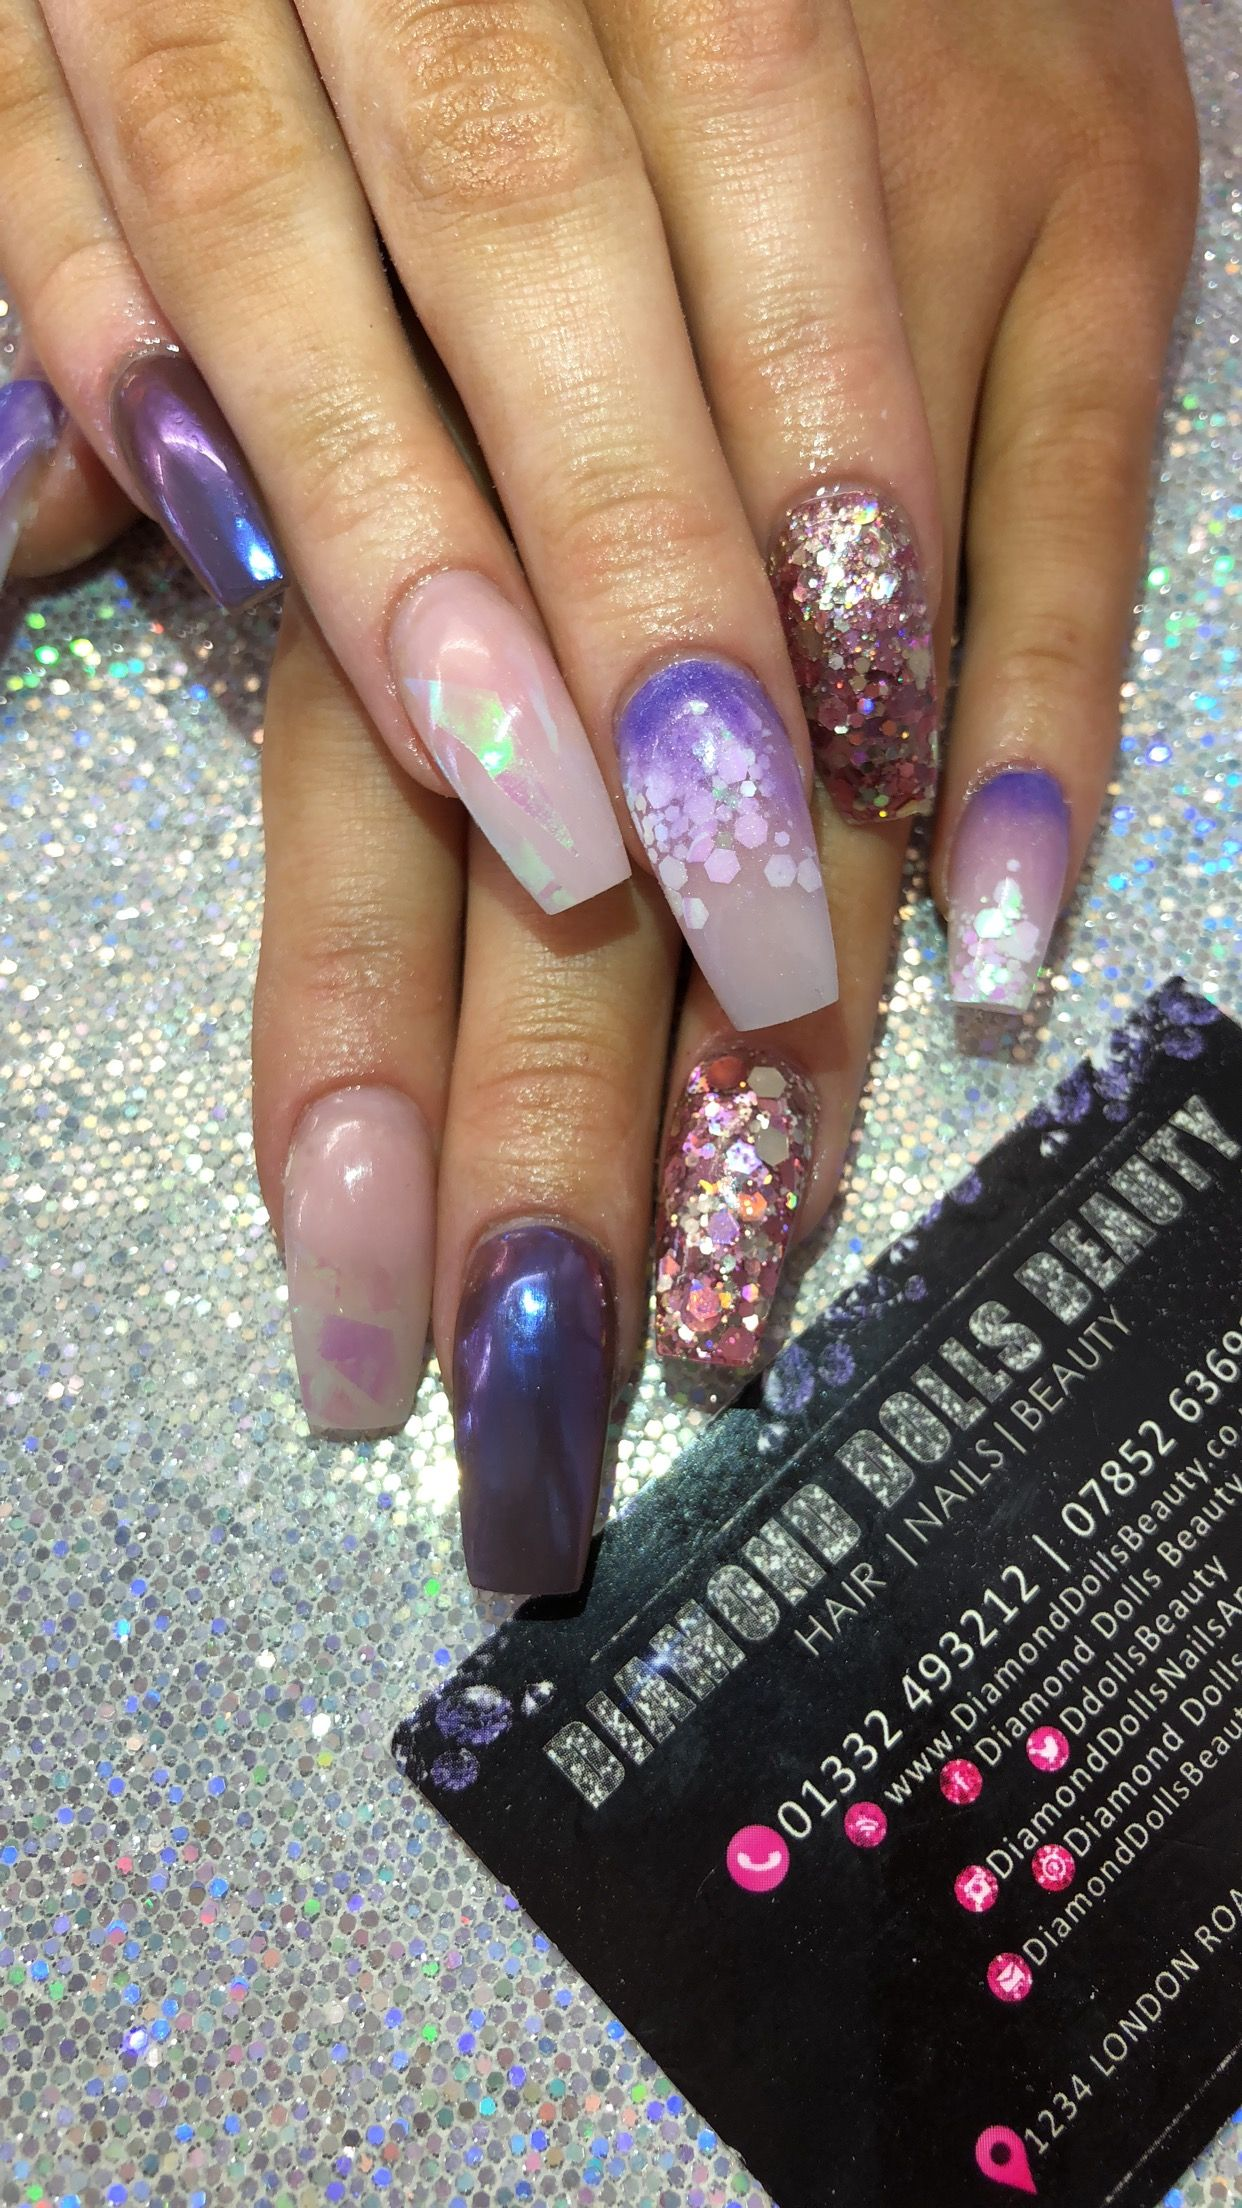 All acrylic nails by Dee at diamond dolls beauty, derby 💕 | Coffin ...